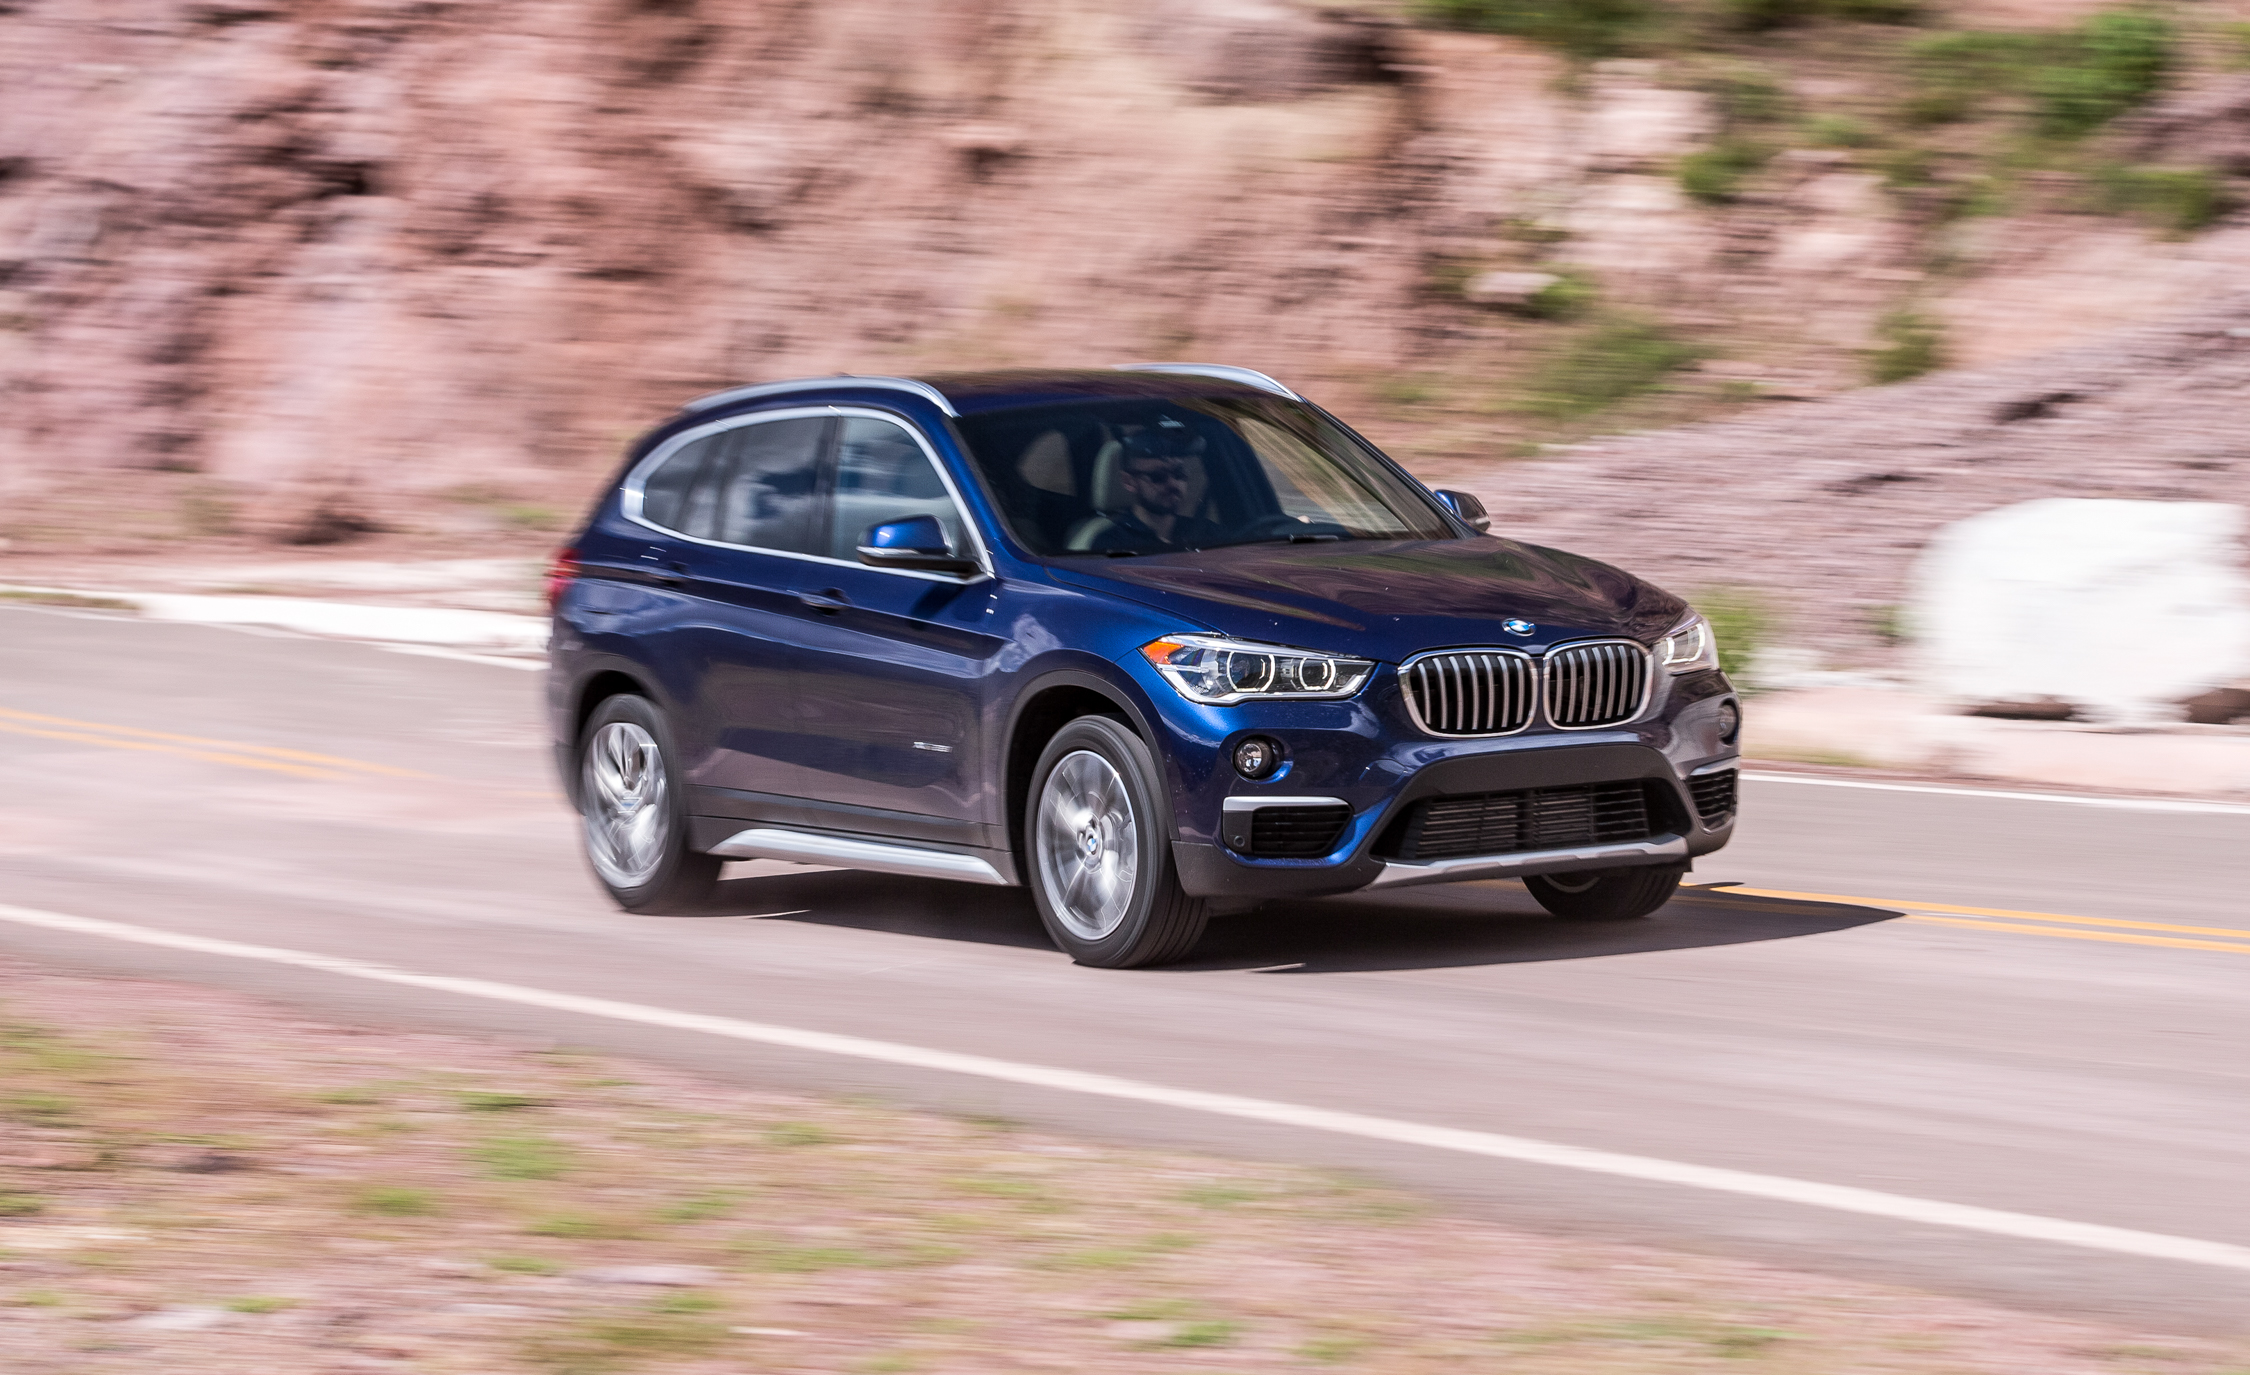 2016 BMW X1 XDrive28i Blue Metallic Test Drive Front And Side View (View 8 of 36)